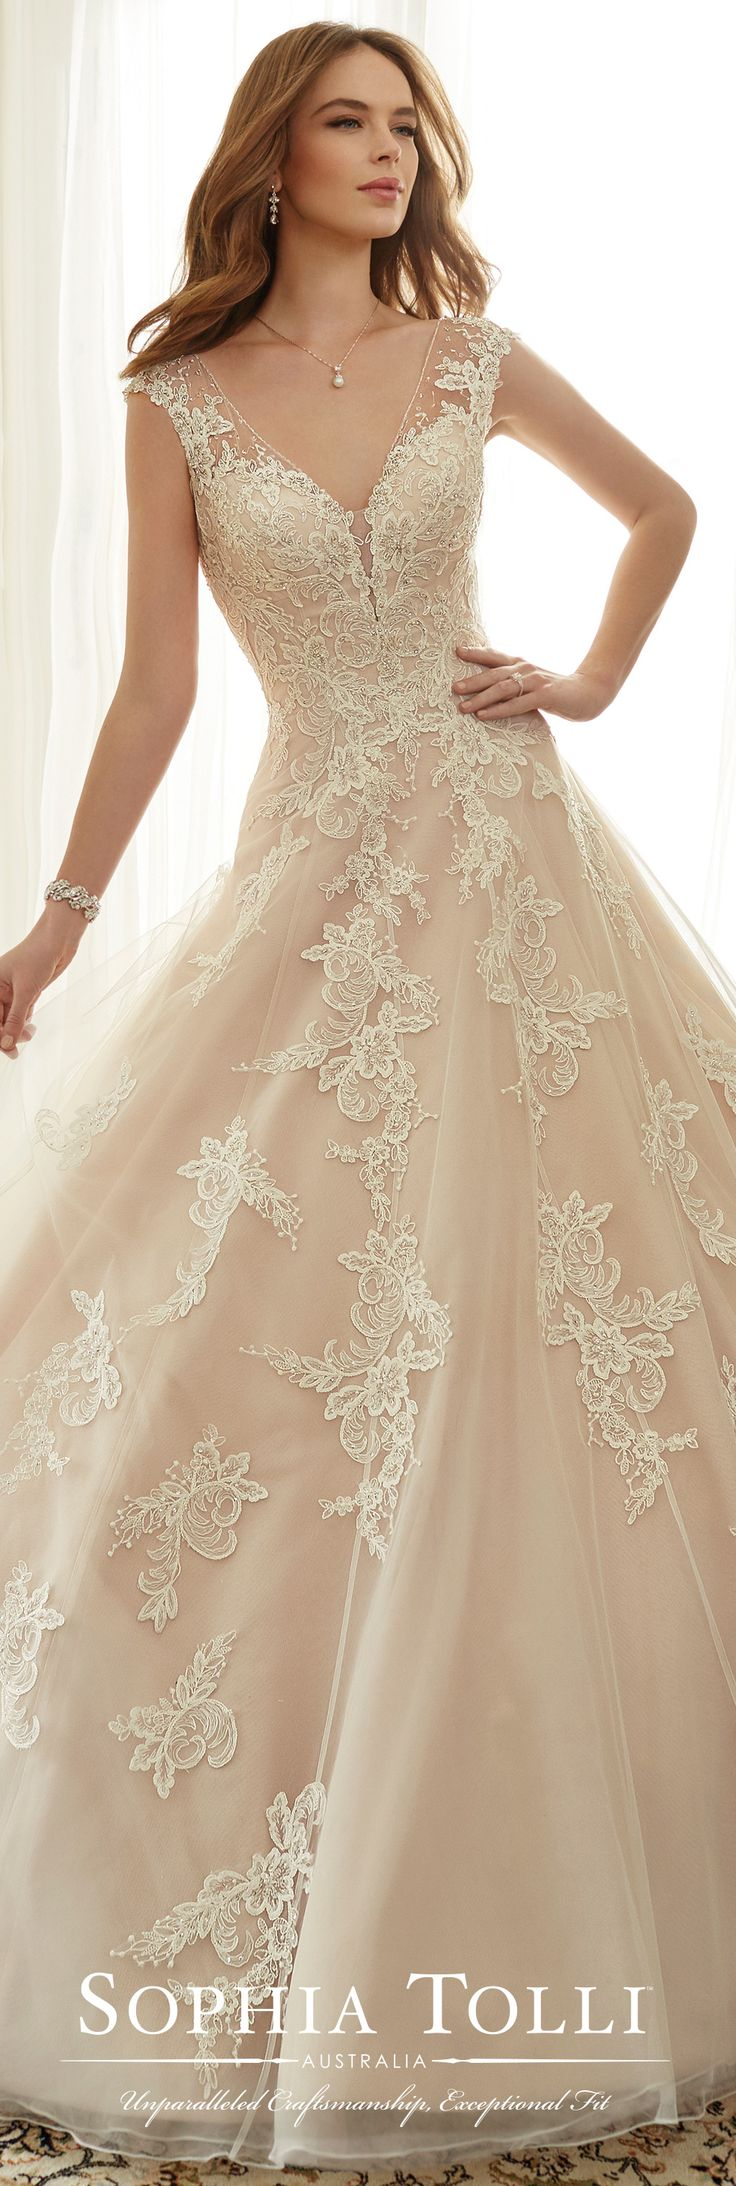 8 best wedding dresses images on Pinterest | Groom attire, Gown ...